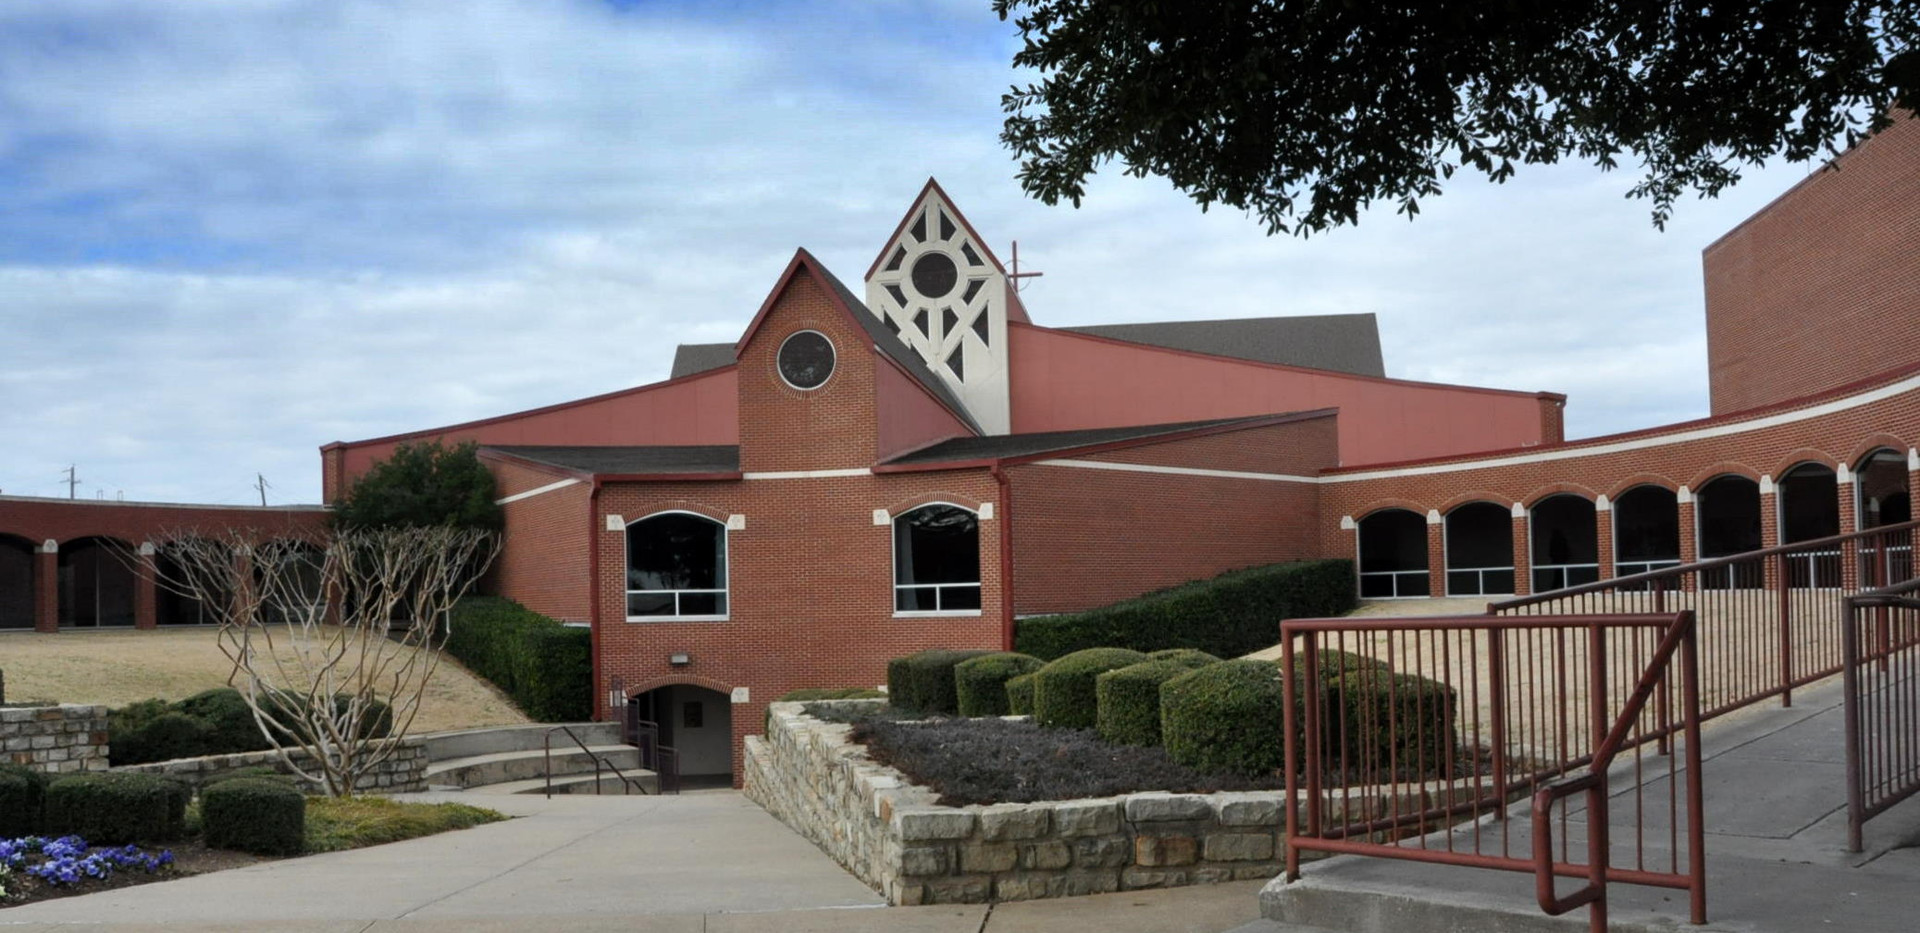 Trietsch United Methodist Church - Education Wing   Frank Dale Construction